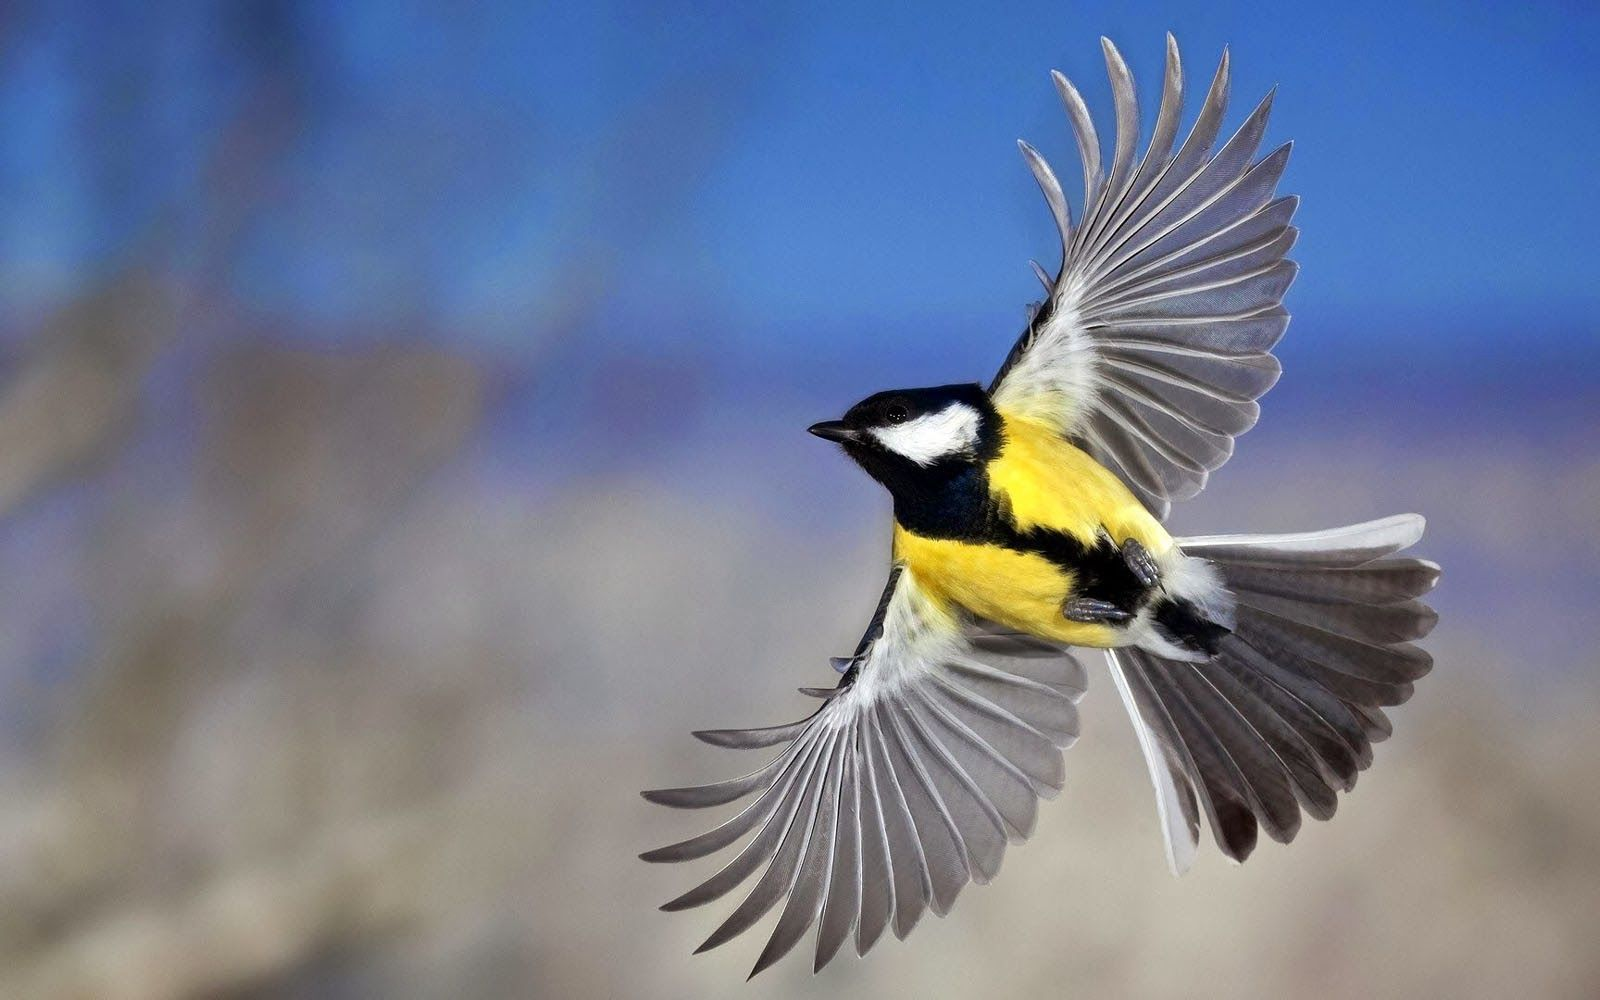 Flying Birds Wallpapers HD Yellow Belly Birds Belly Hd 1600x1000